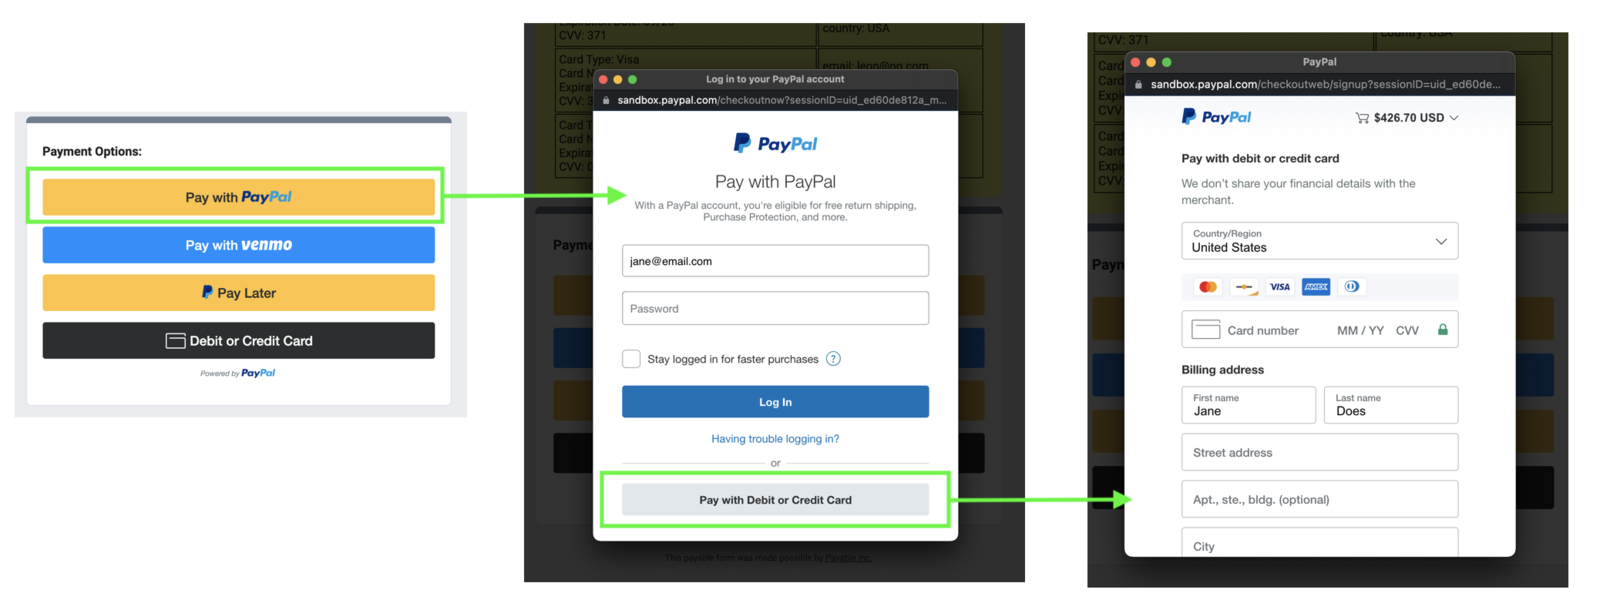 Getting to the Full PayPal Guest Checkout